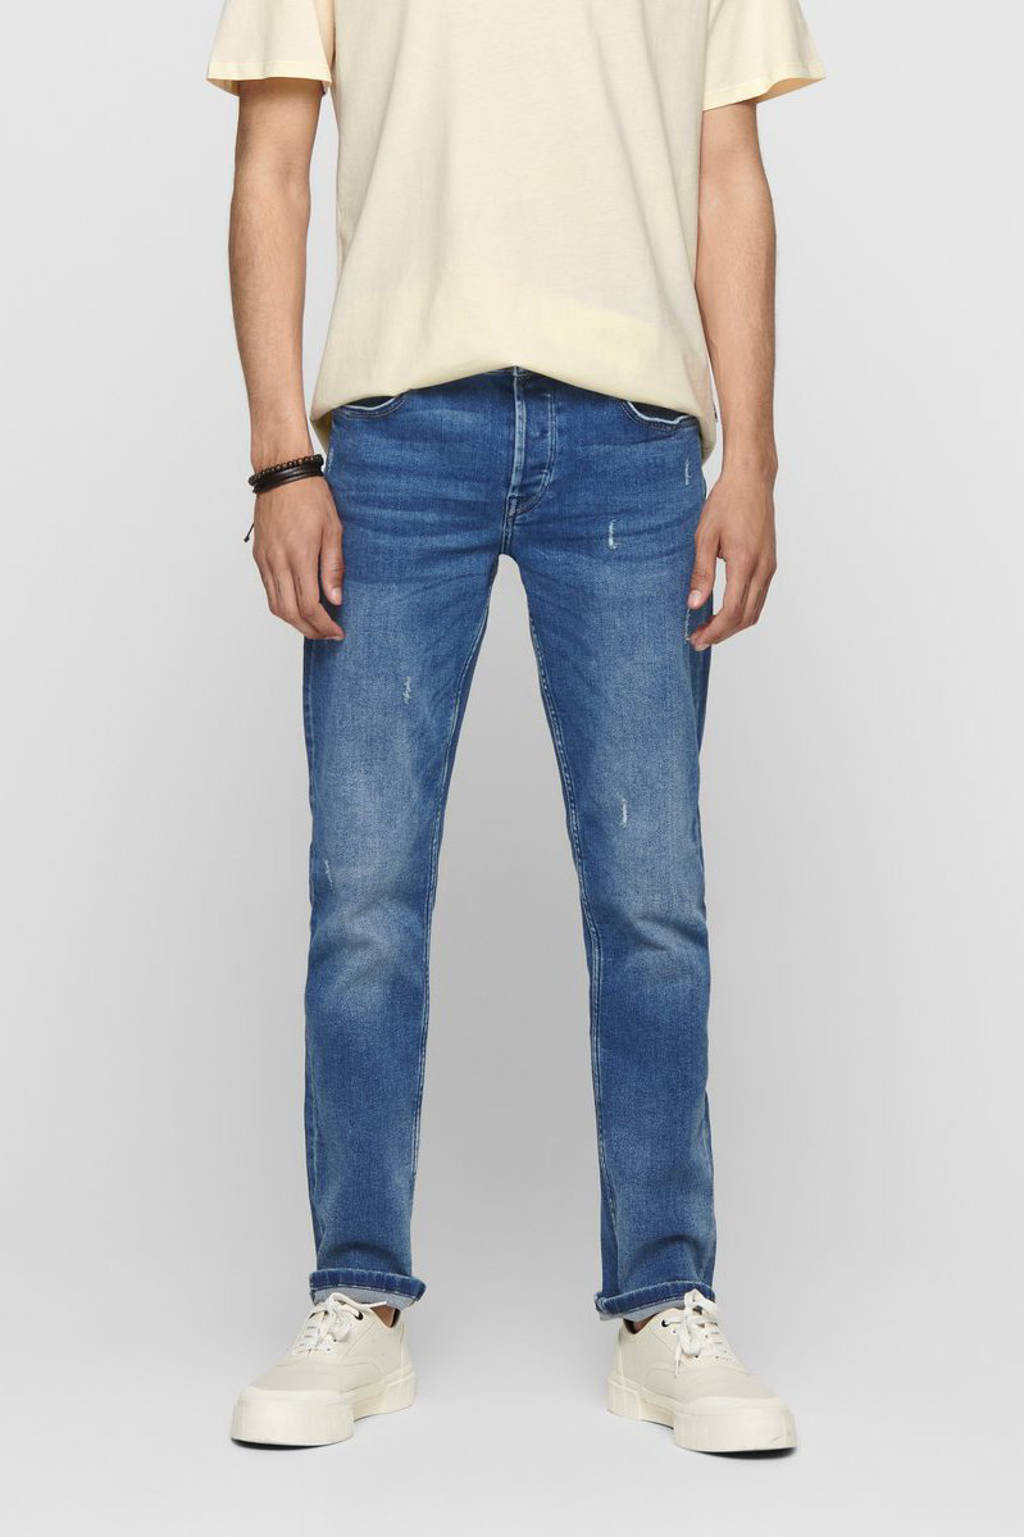 ONLY & SONS skinny jeans 3632, Blue denim